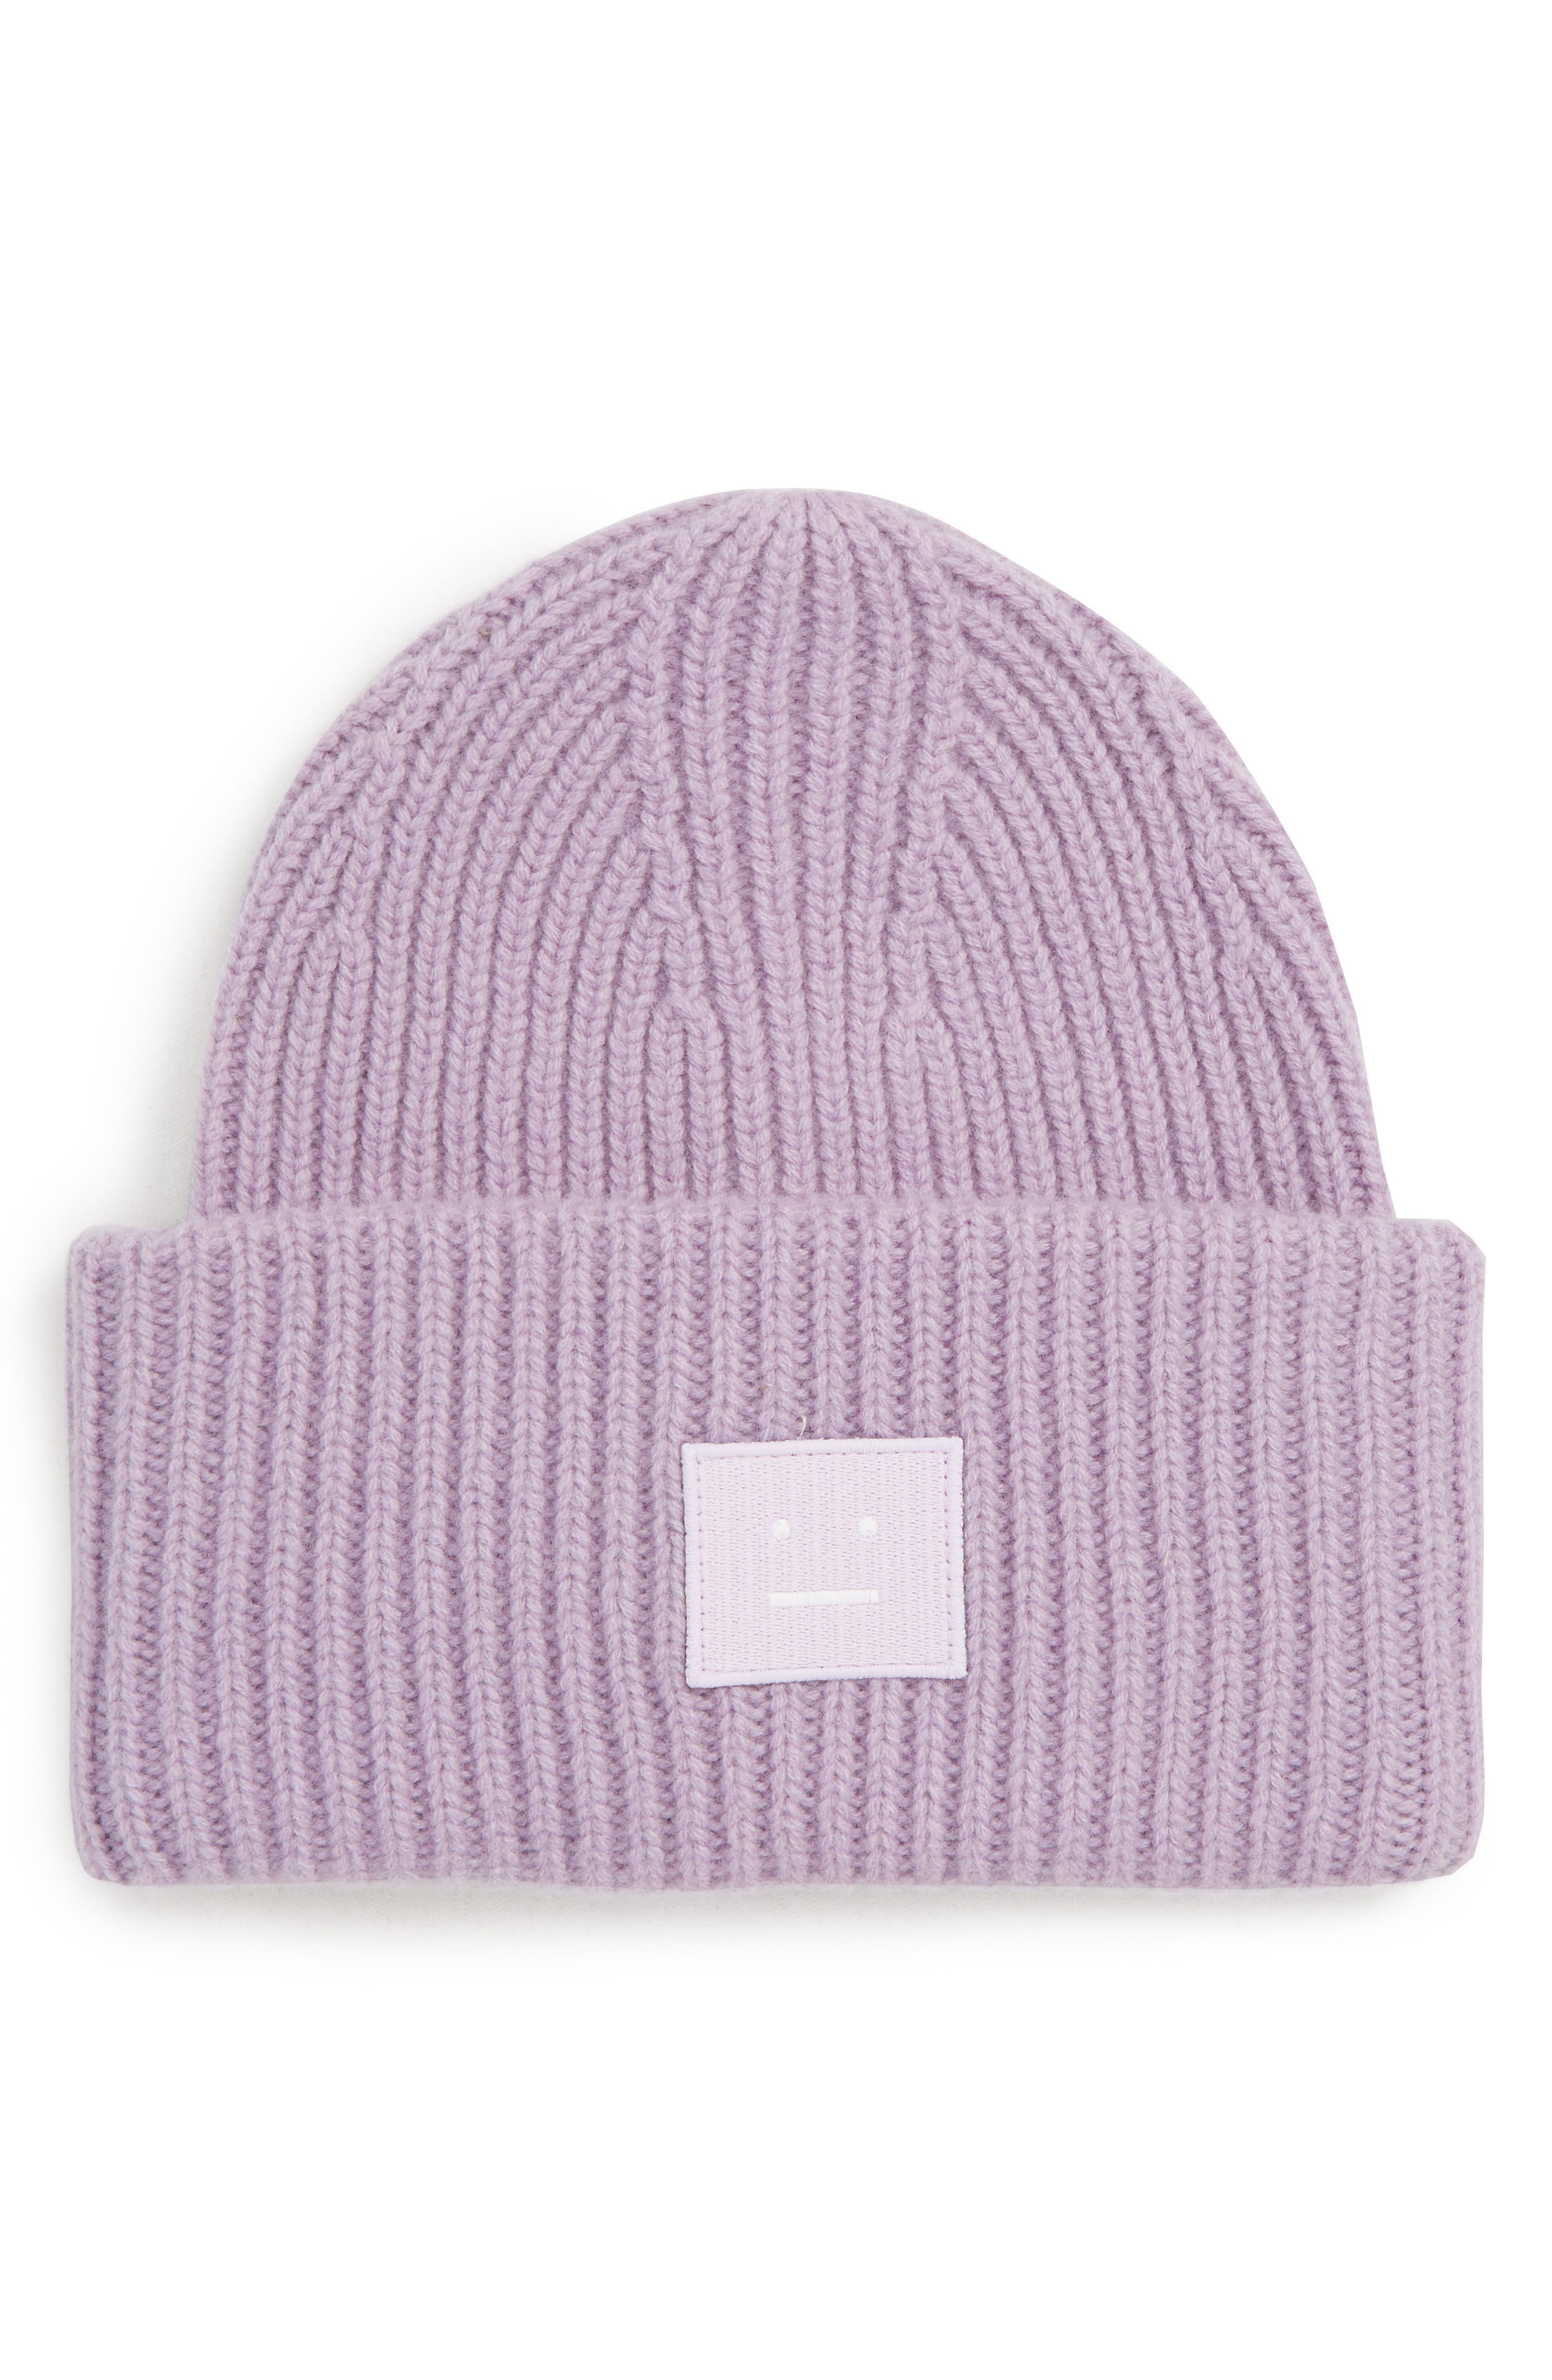 79abea27fc6 Beanies for Women